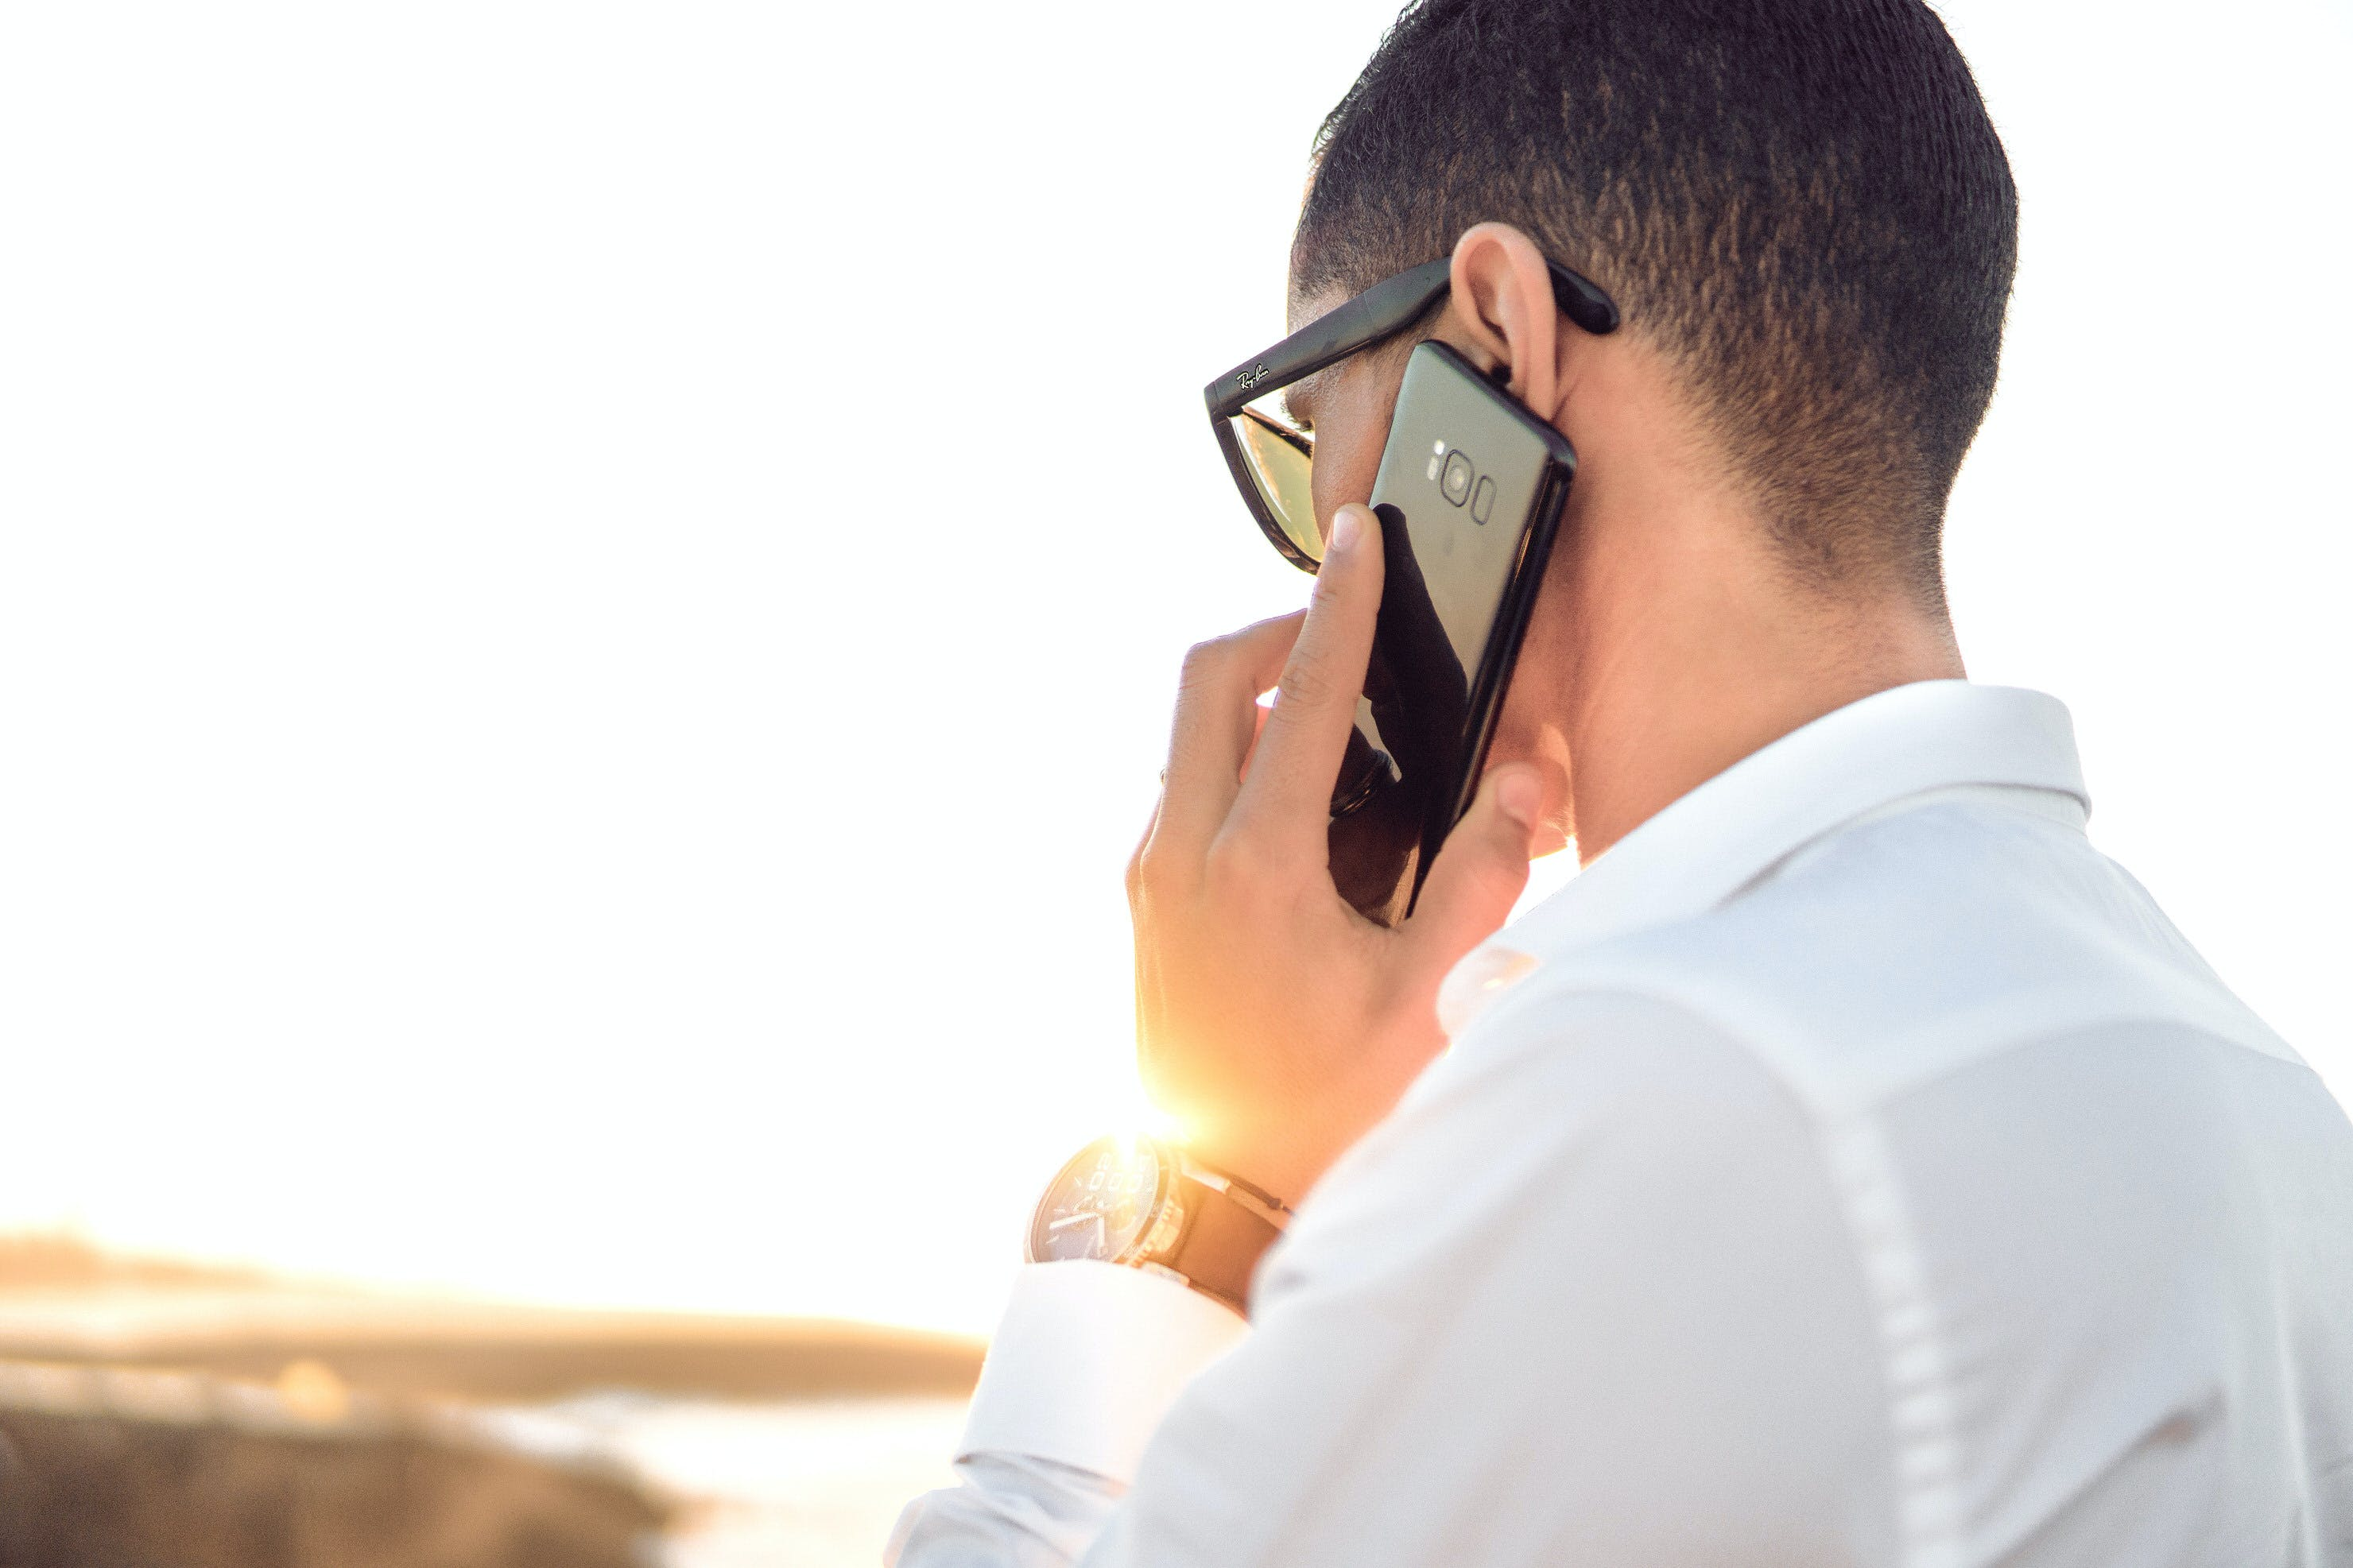 Shallow Focus Photography of a Man in White Collared Dress Shirt Talking to the Phone Using Black Android Smartphone